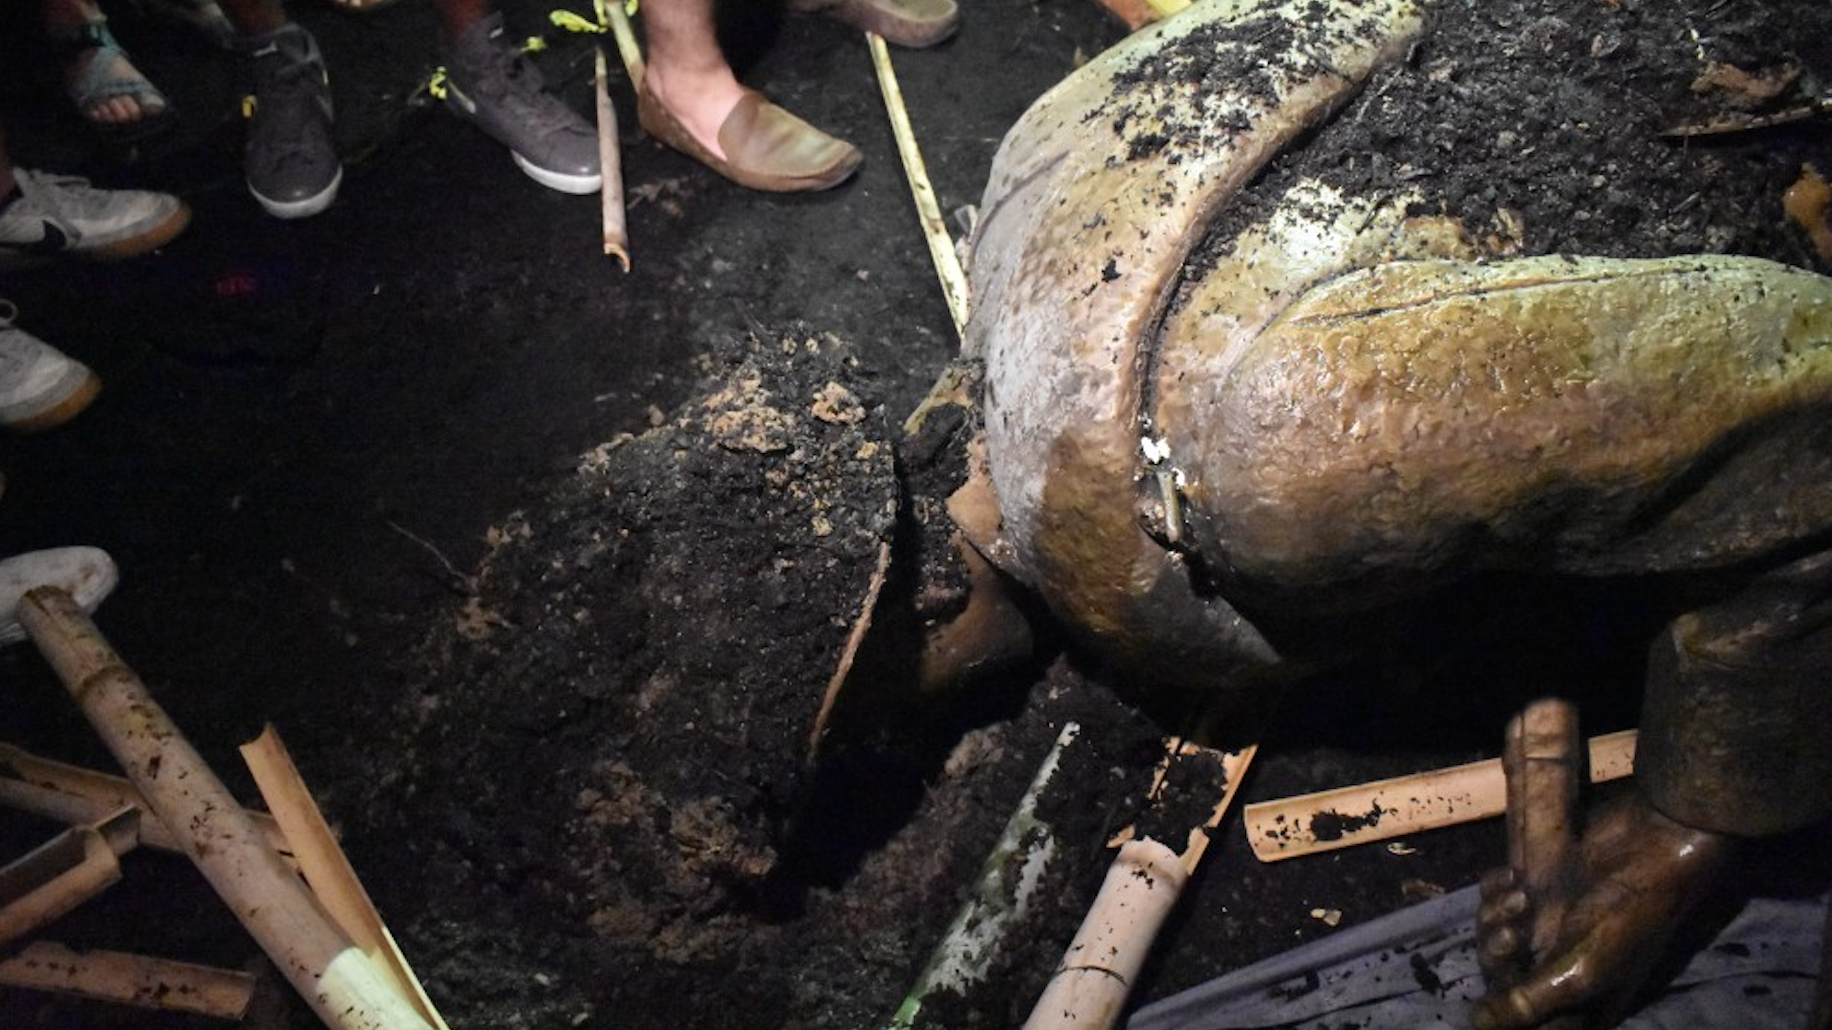 Silent Sam in the dirt after protesters tore the statue down (Source: The Daily Tar Heel/ Janet Ayala )